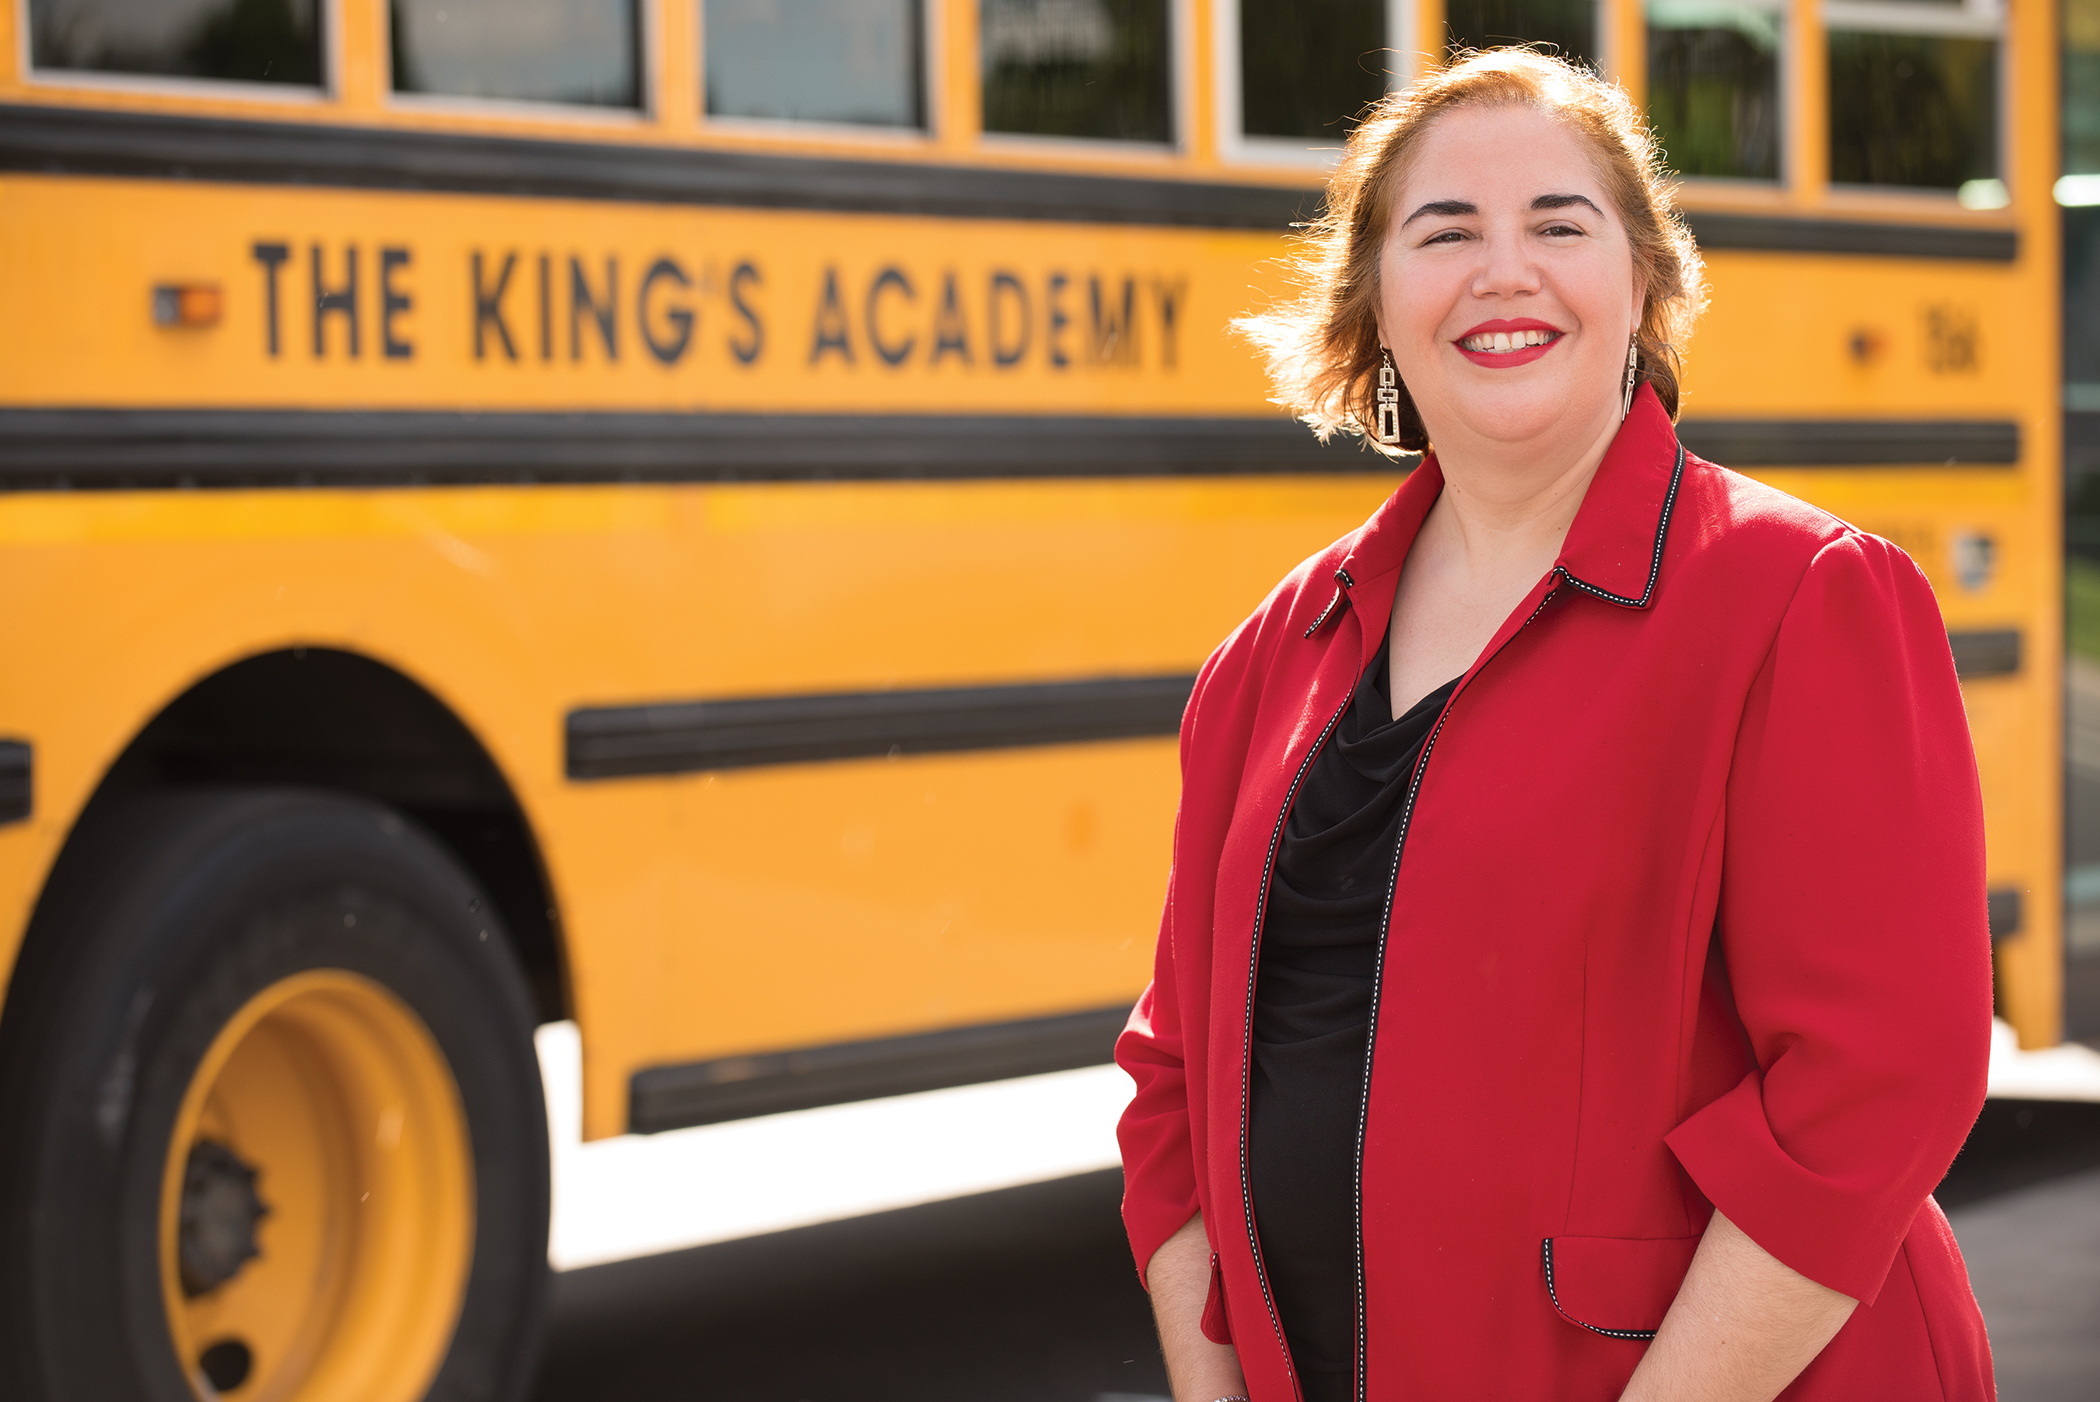 Former attorney Lizardo teaches English at The King's Academy.